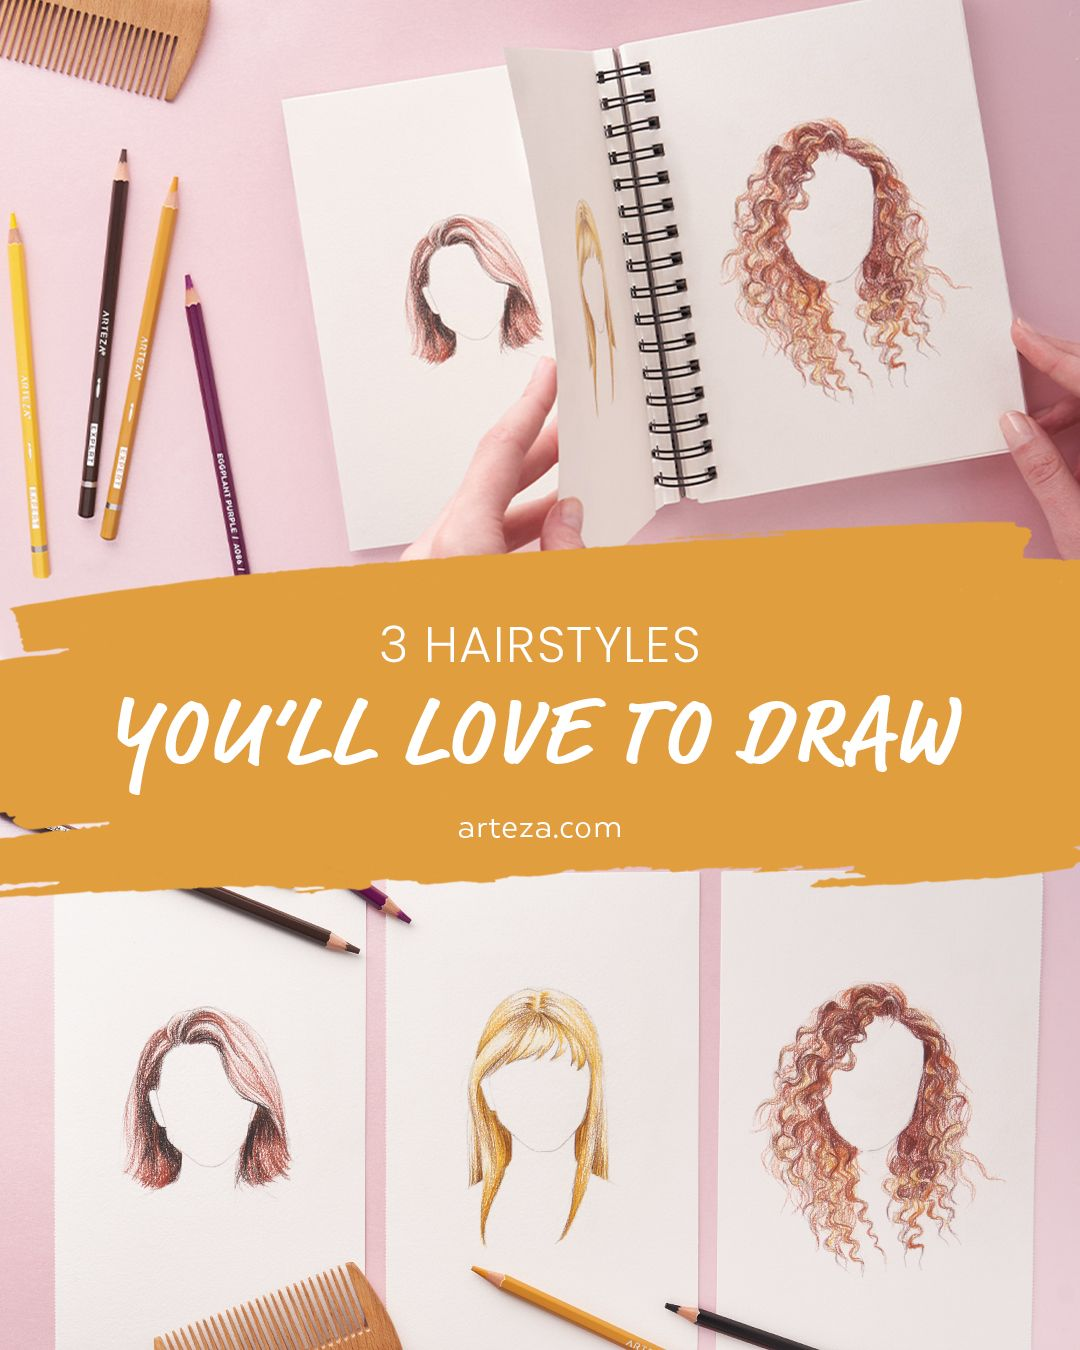 11+ 3 Hairstyles You'll Love To Draw Images